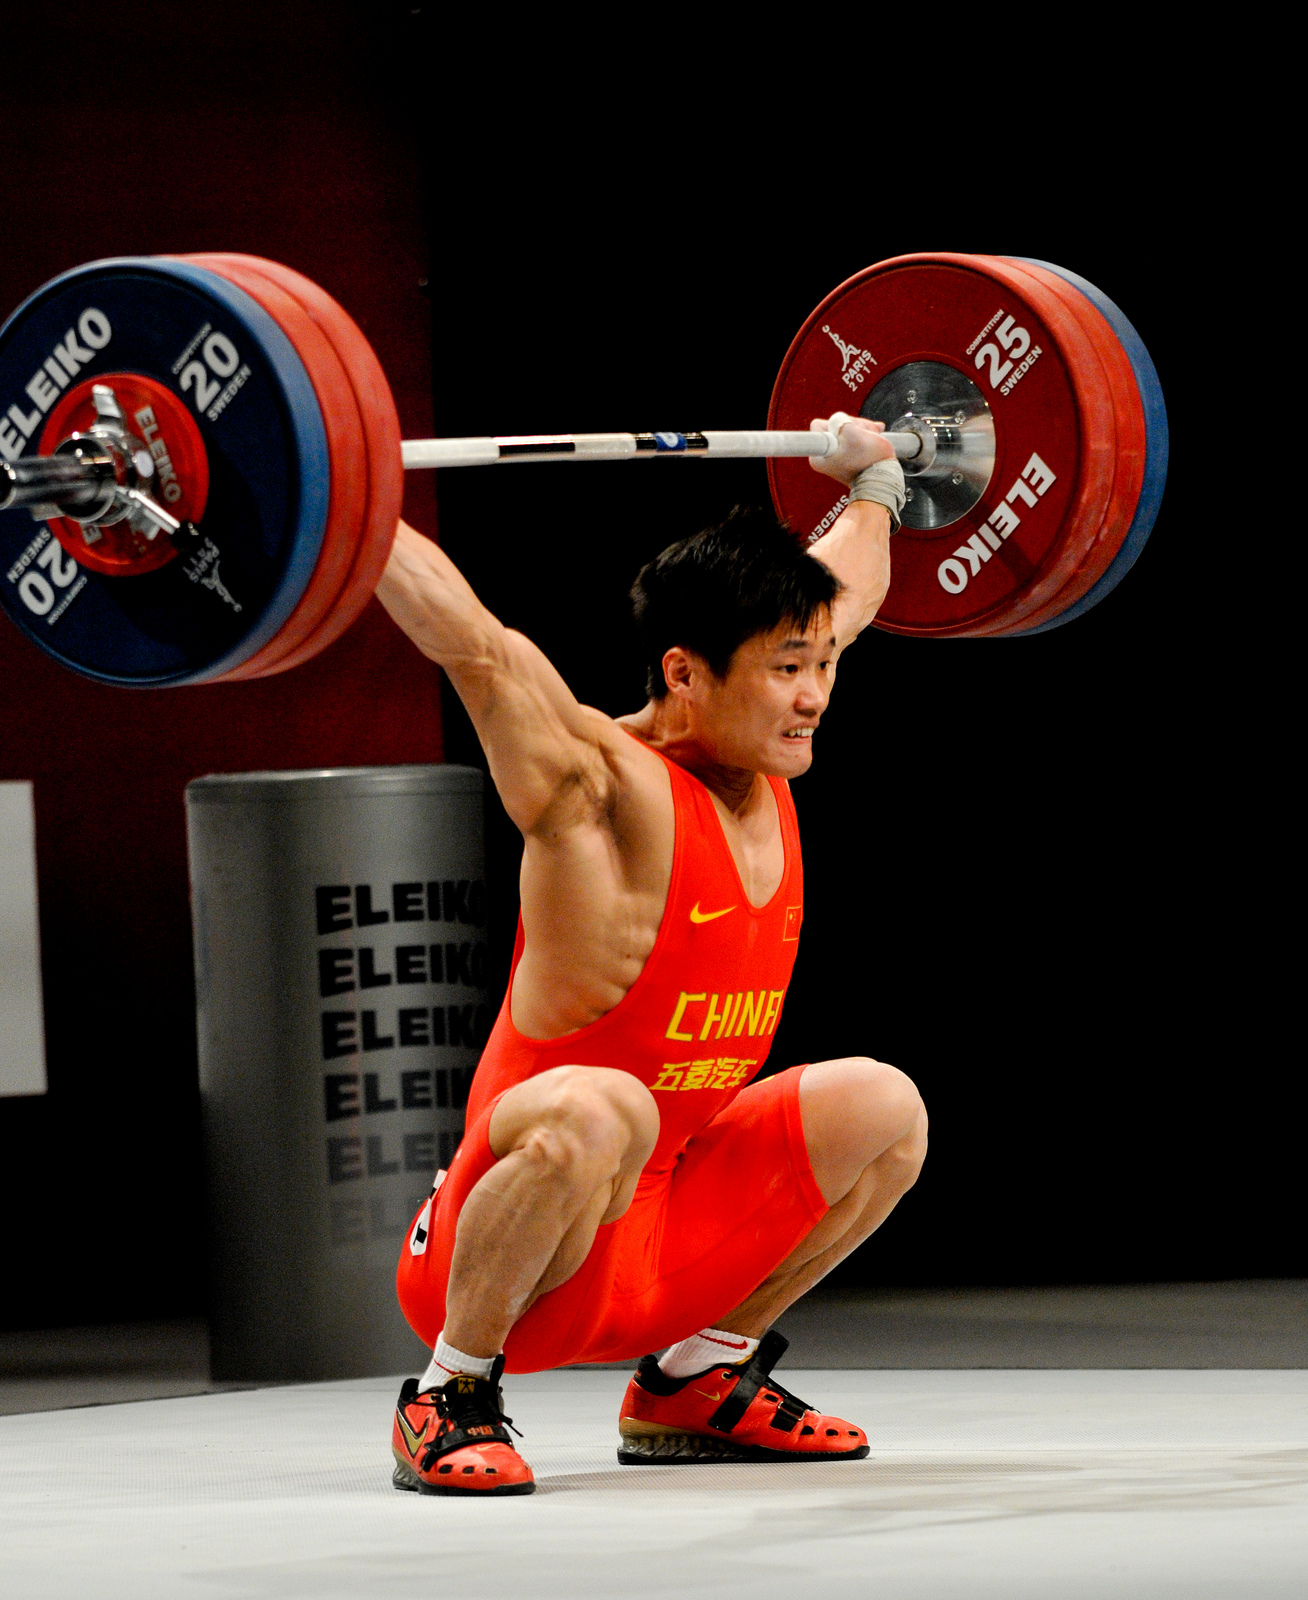 Athlete Performing a Snatch